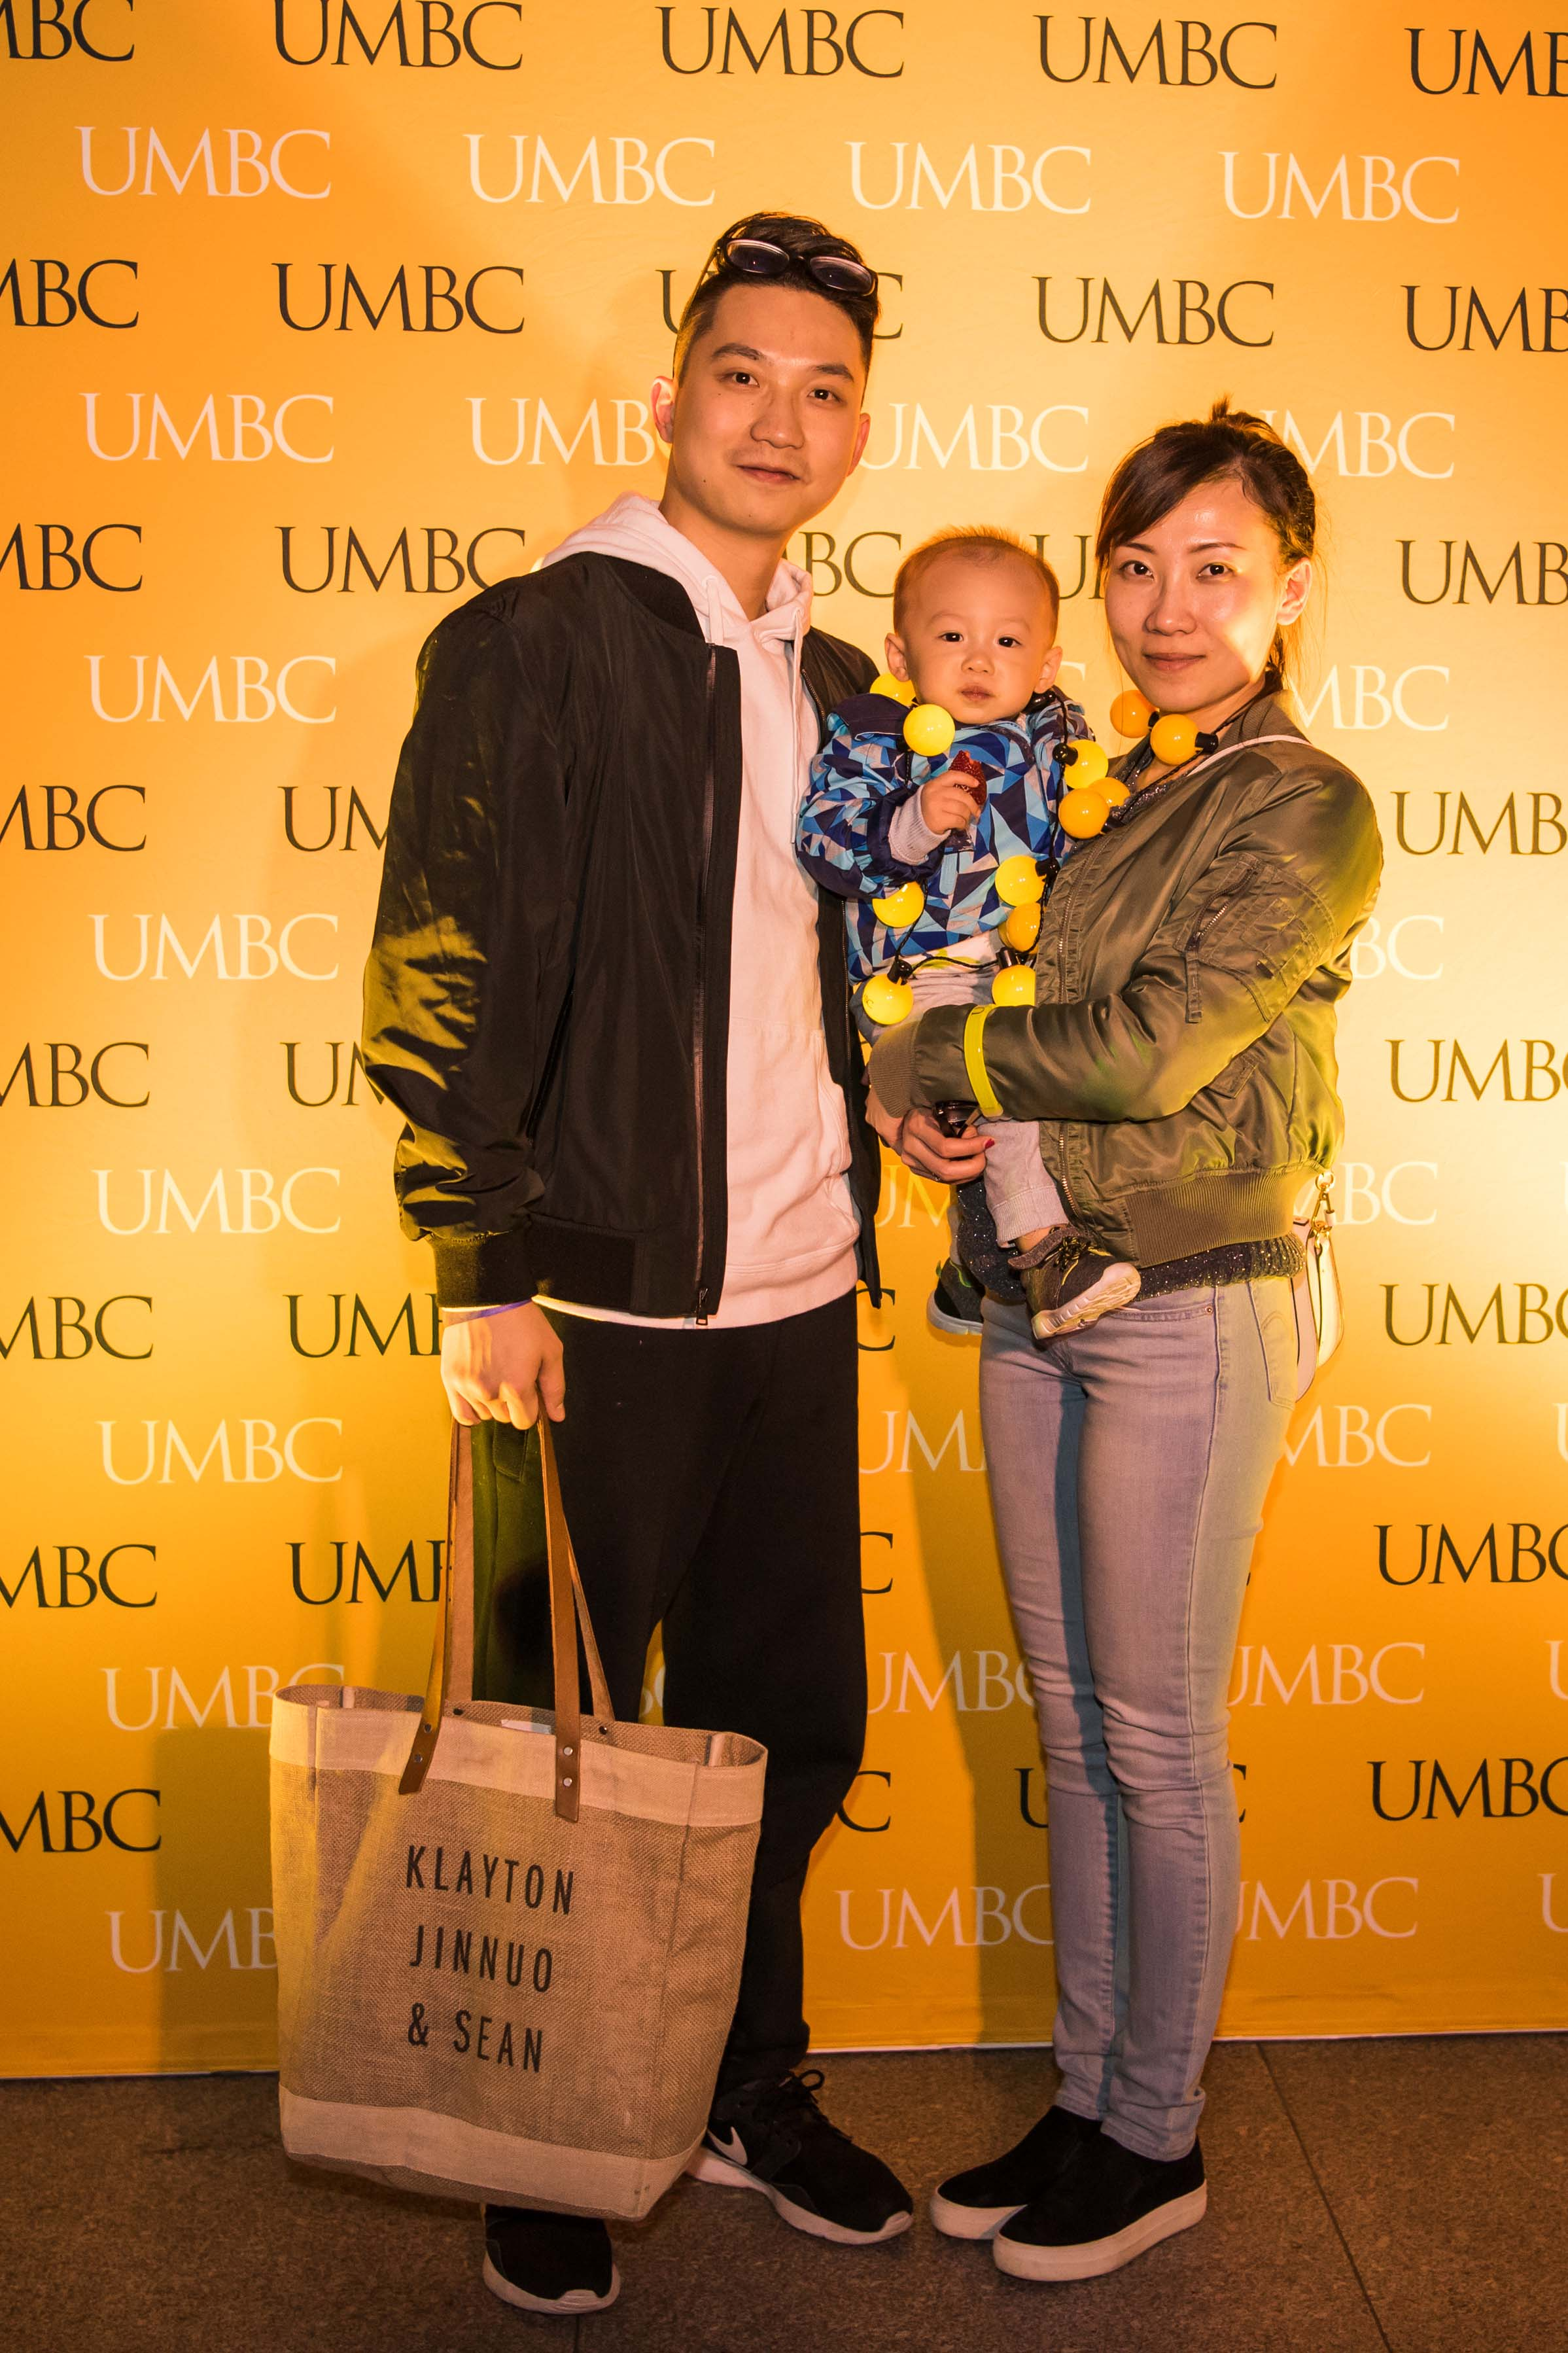 Family pose in front of UMBC wall at alumni reception